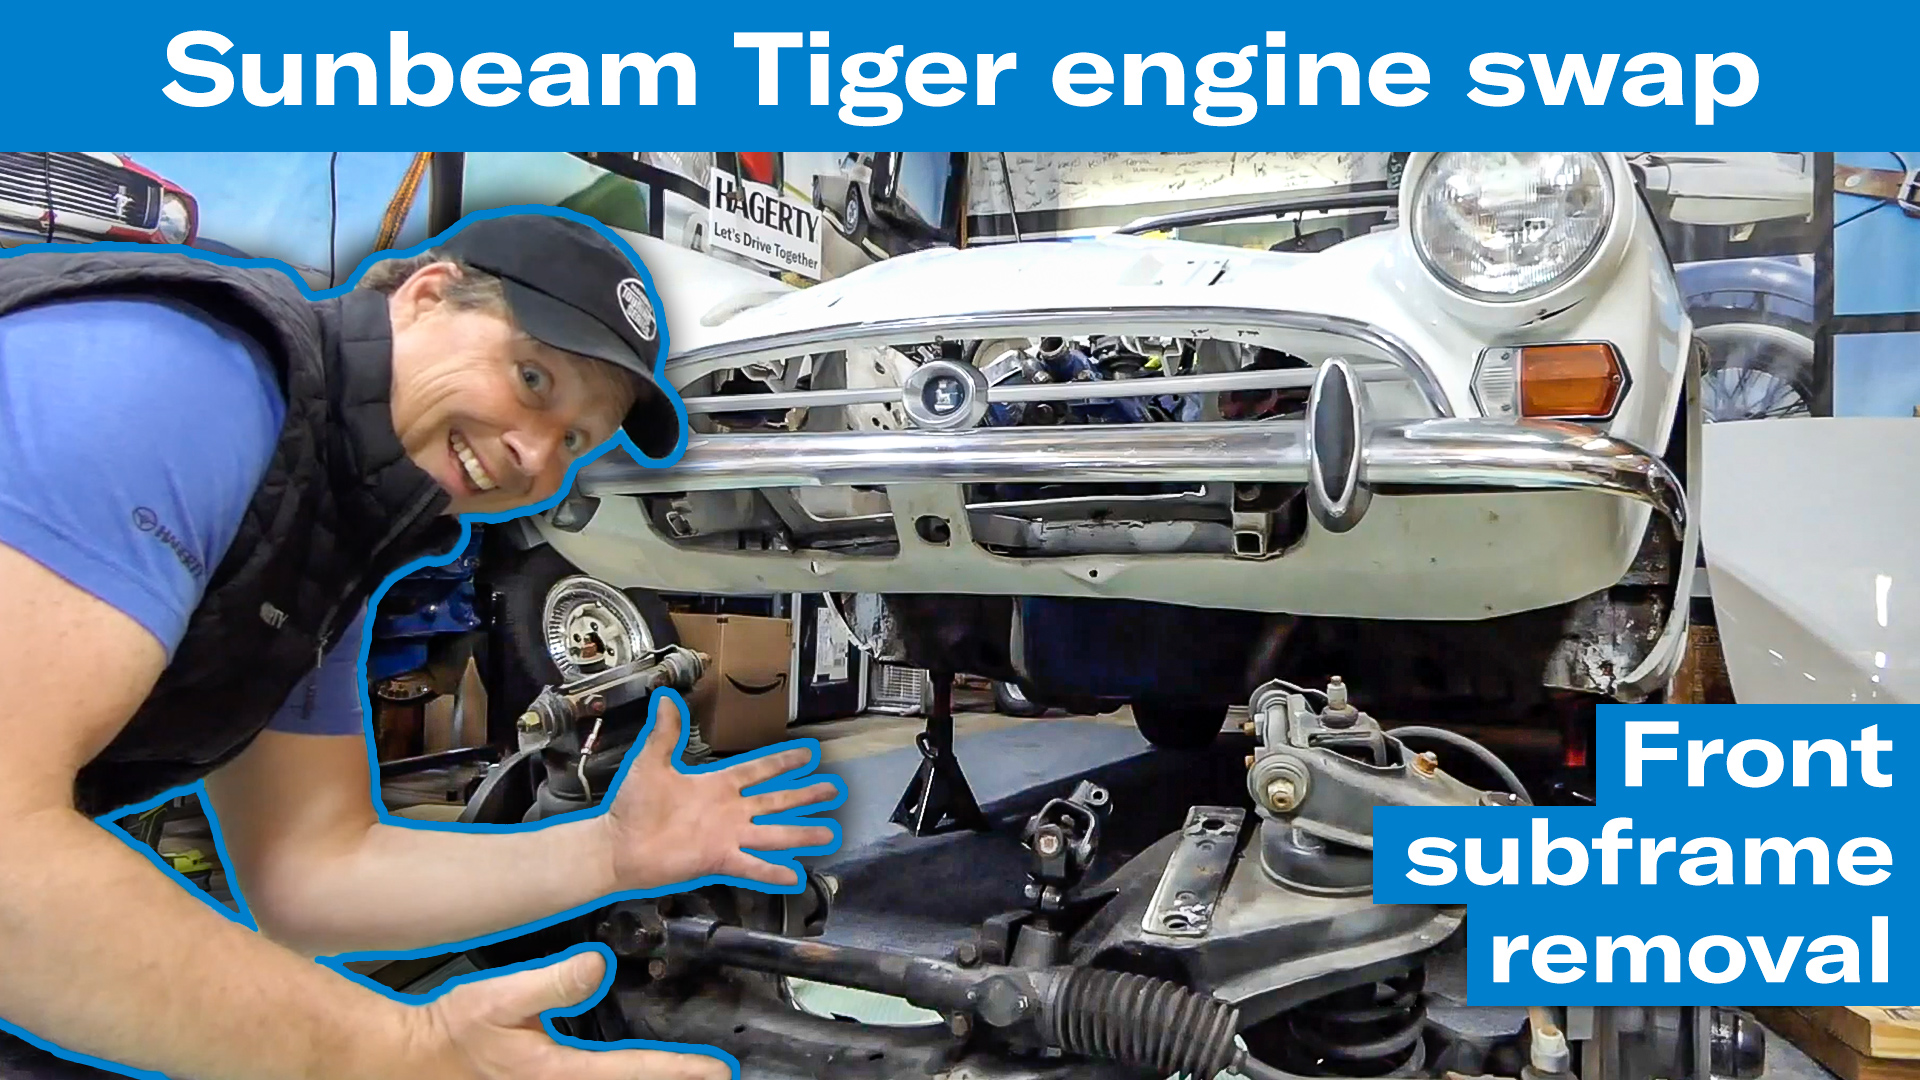 Front subframe removal goes mostly according to plan | Sunbeam Tiger engine swap project